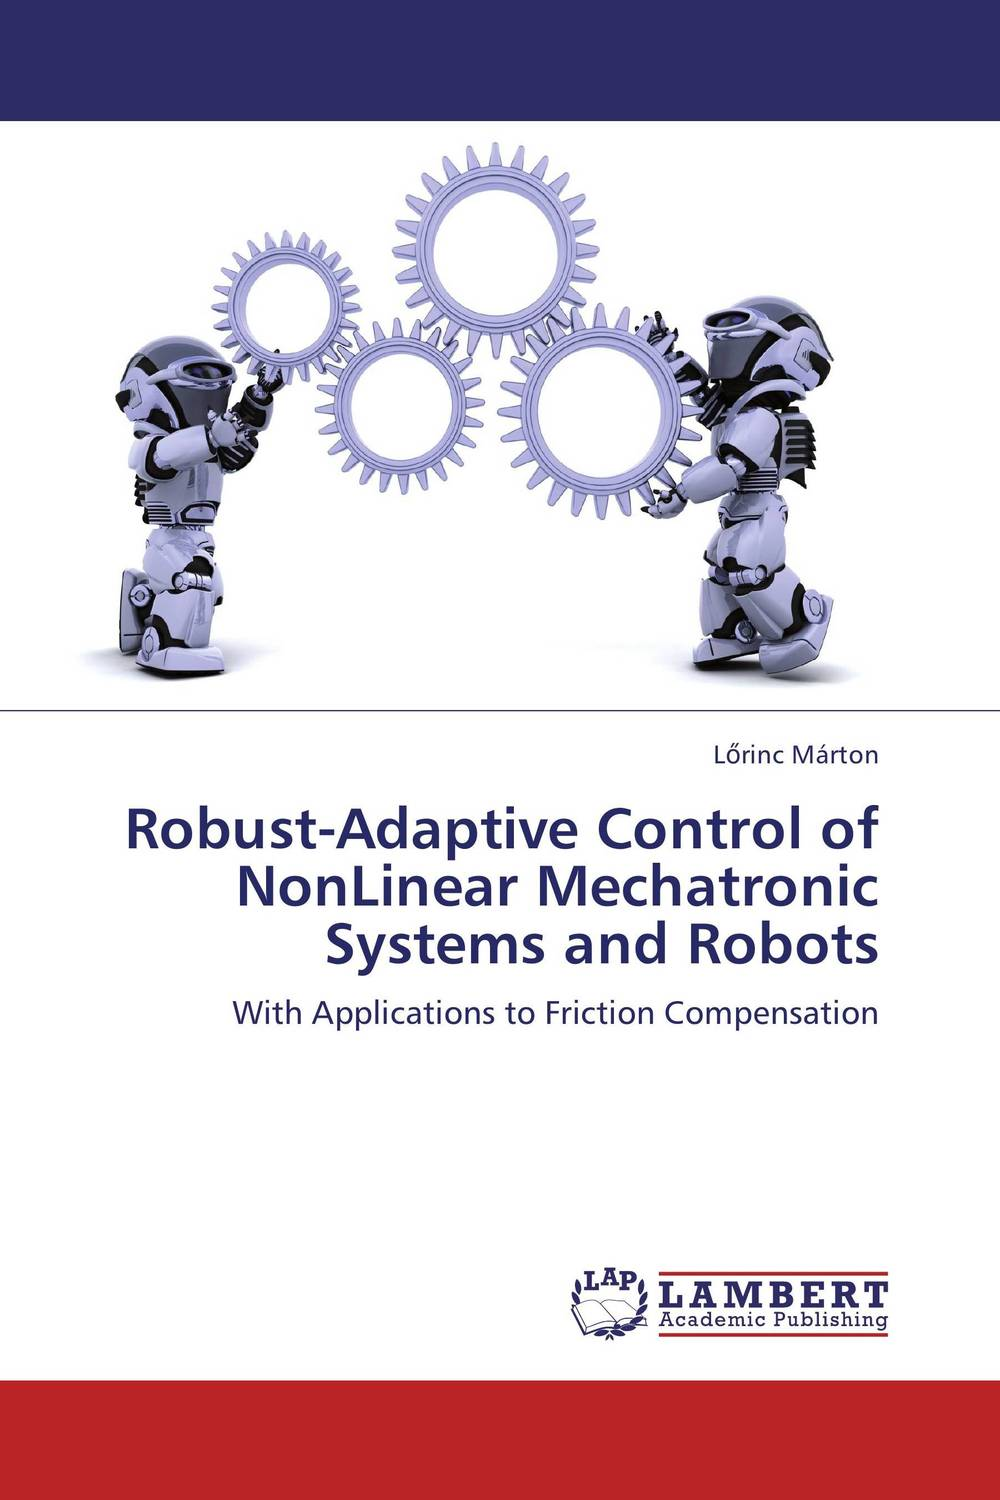 Robust-Adaptive Control of NonLinear Mechatronic Systems and Robots thomas l vincent nonlinear and optimal control systems